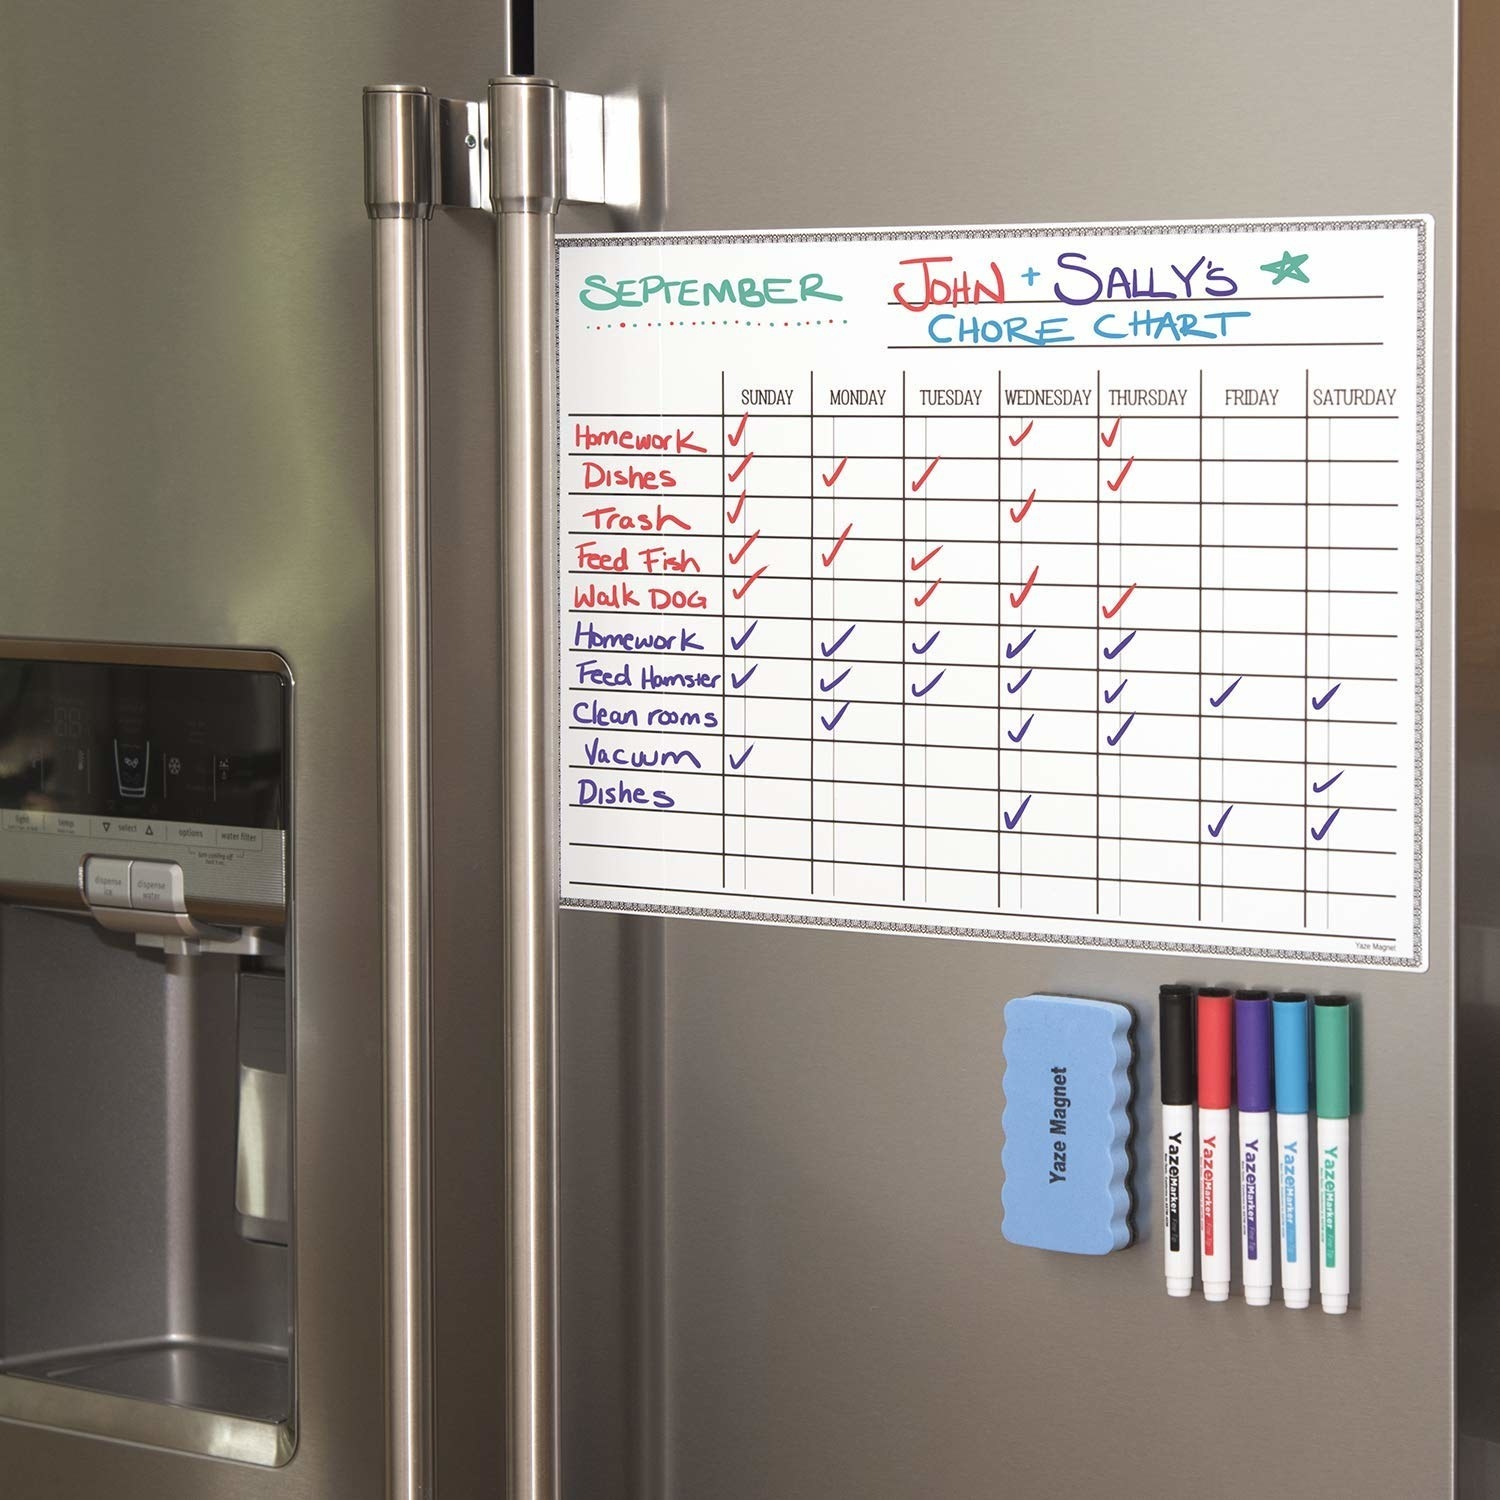 A chart on a fridge along with an eraser and dry-erase markers lined up underneath it. The chart has a list of chores to be done and the week day they're due